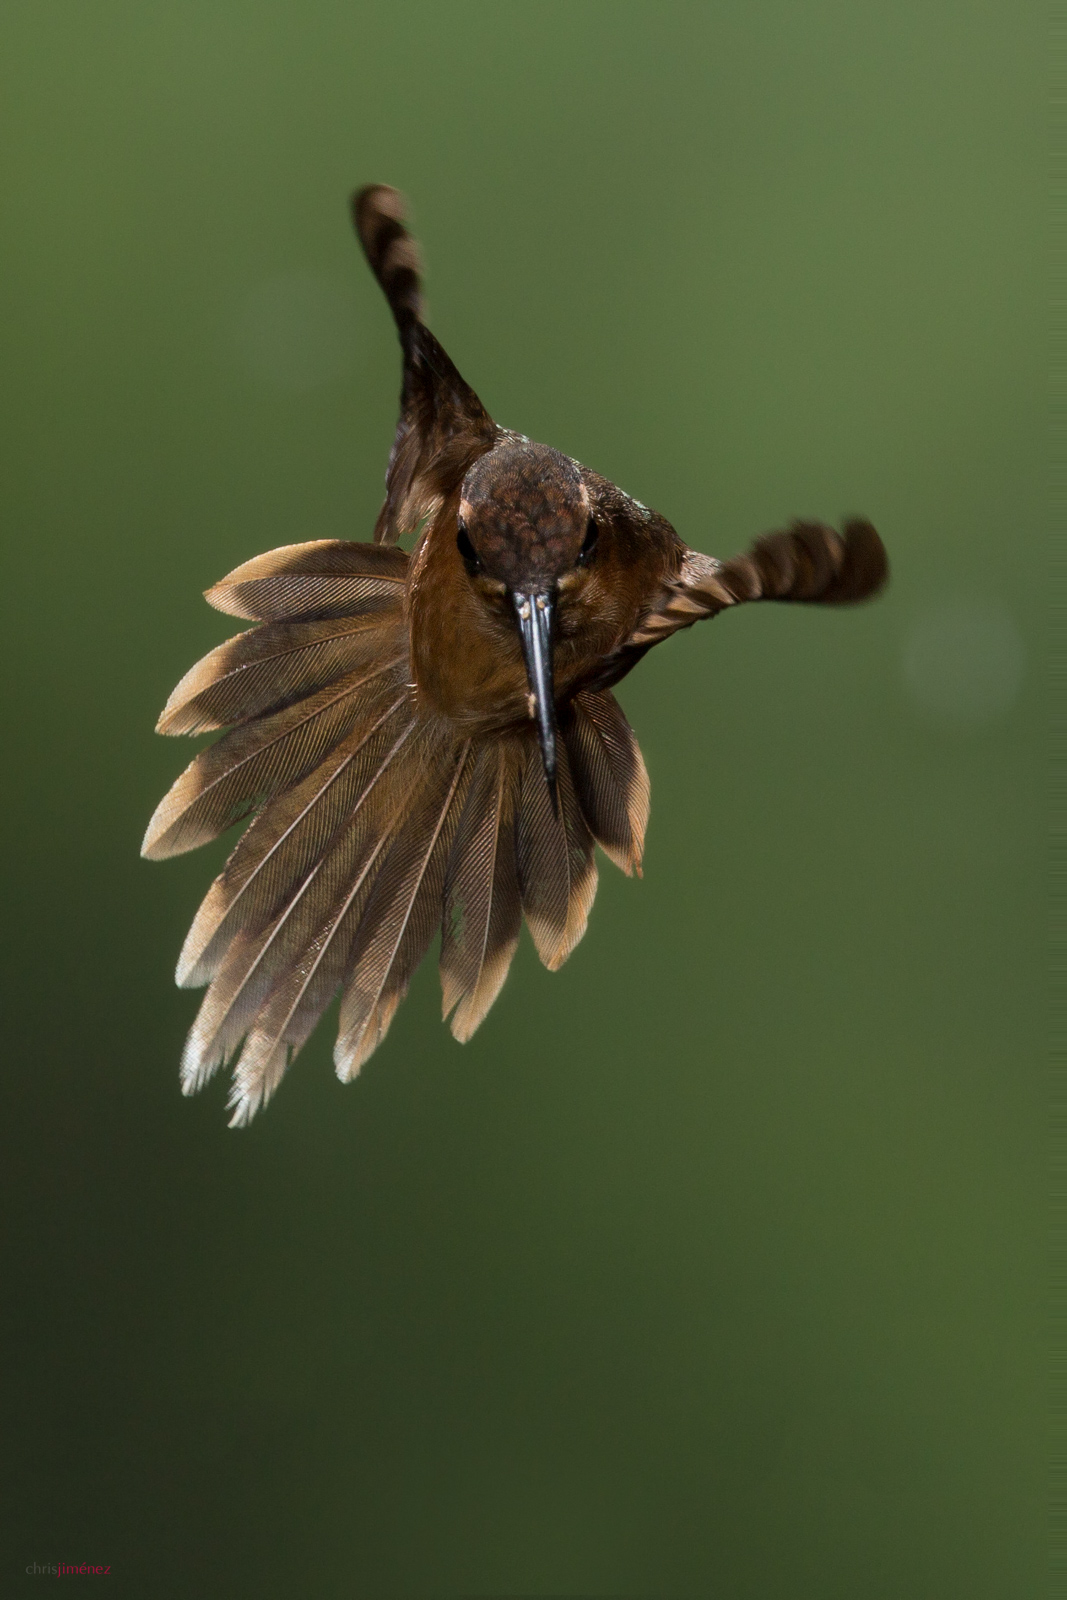 Stripe-throated Hermit (Phaethornis striigularis) showing tail display at the low lands of Costa Rica